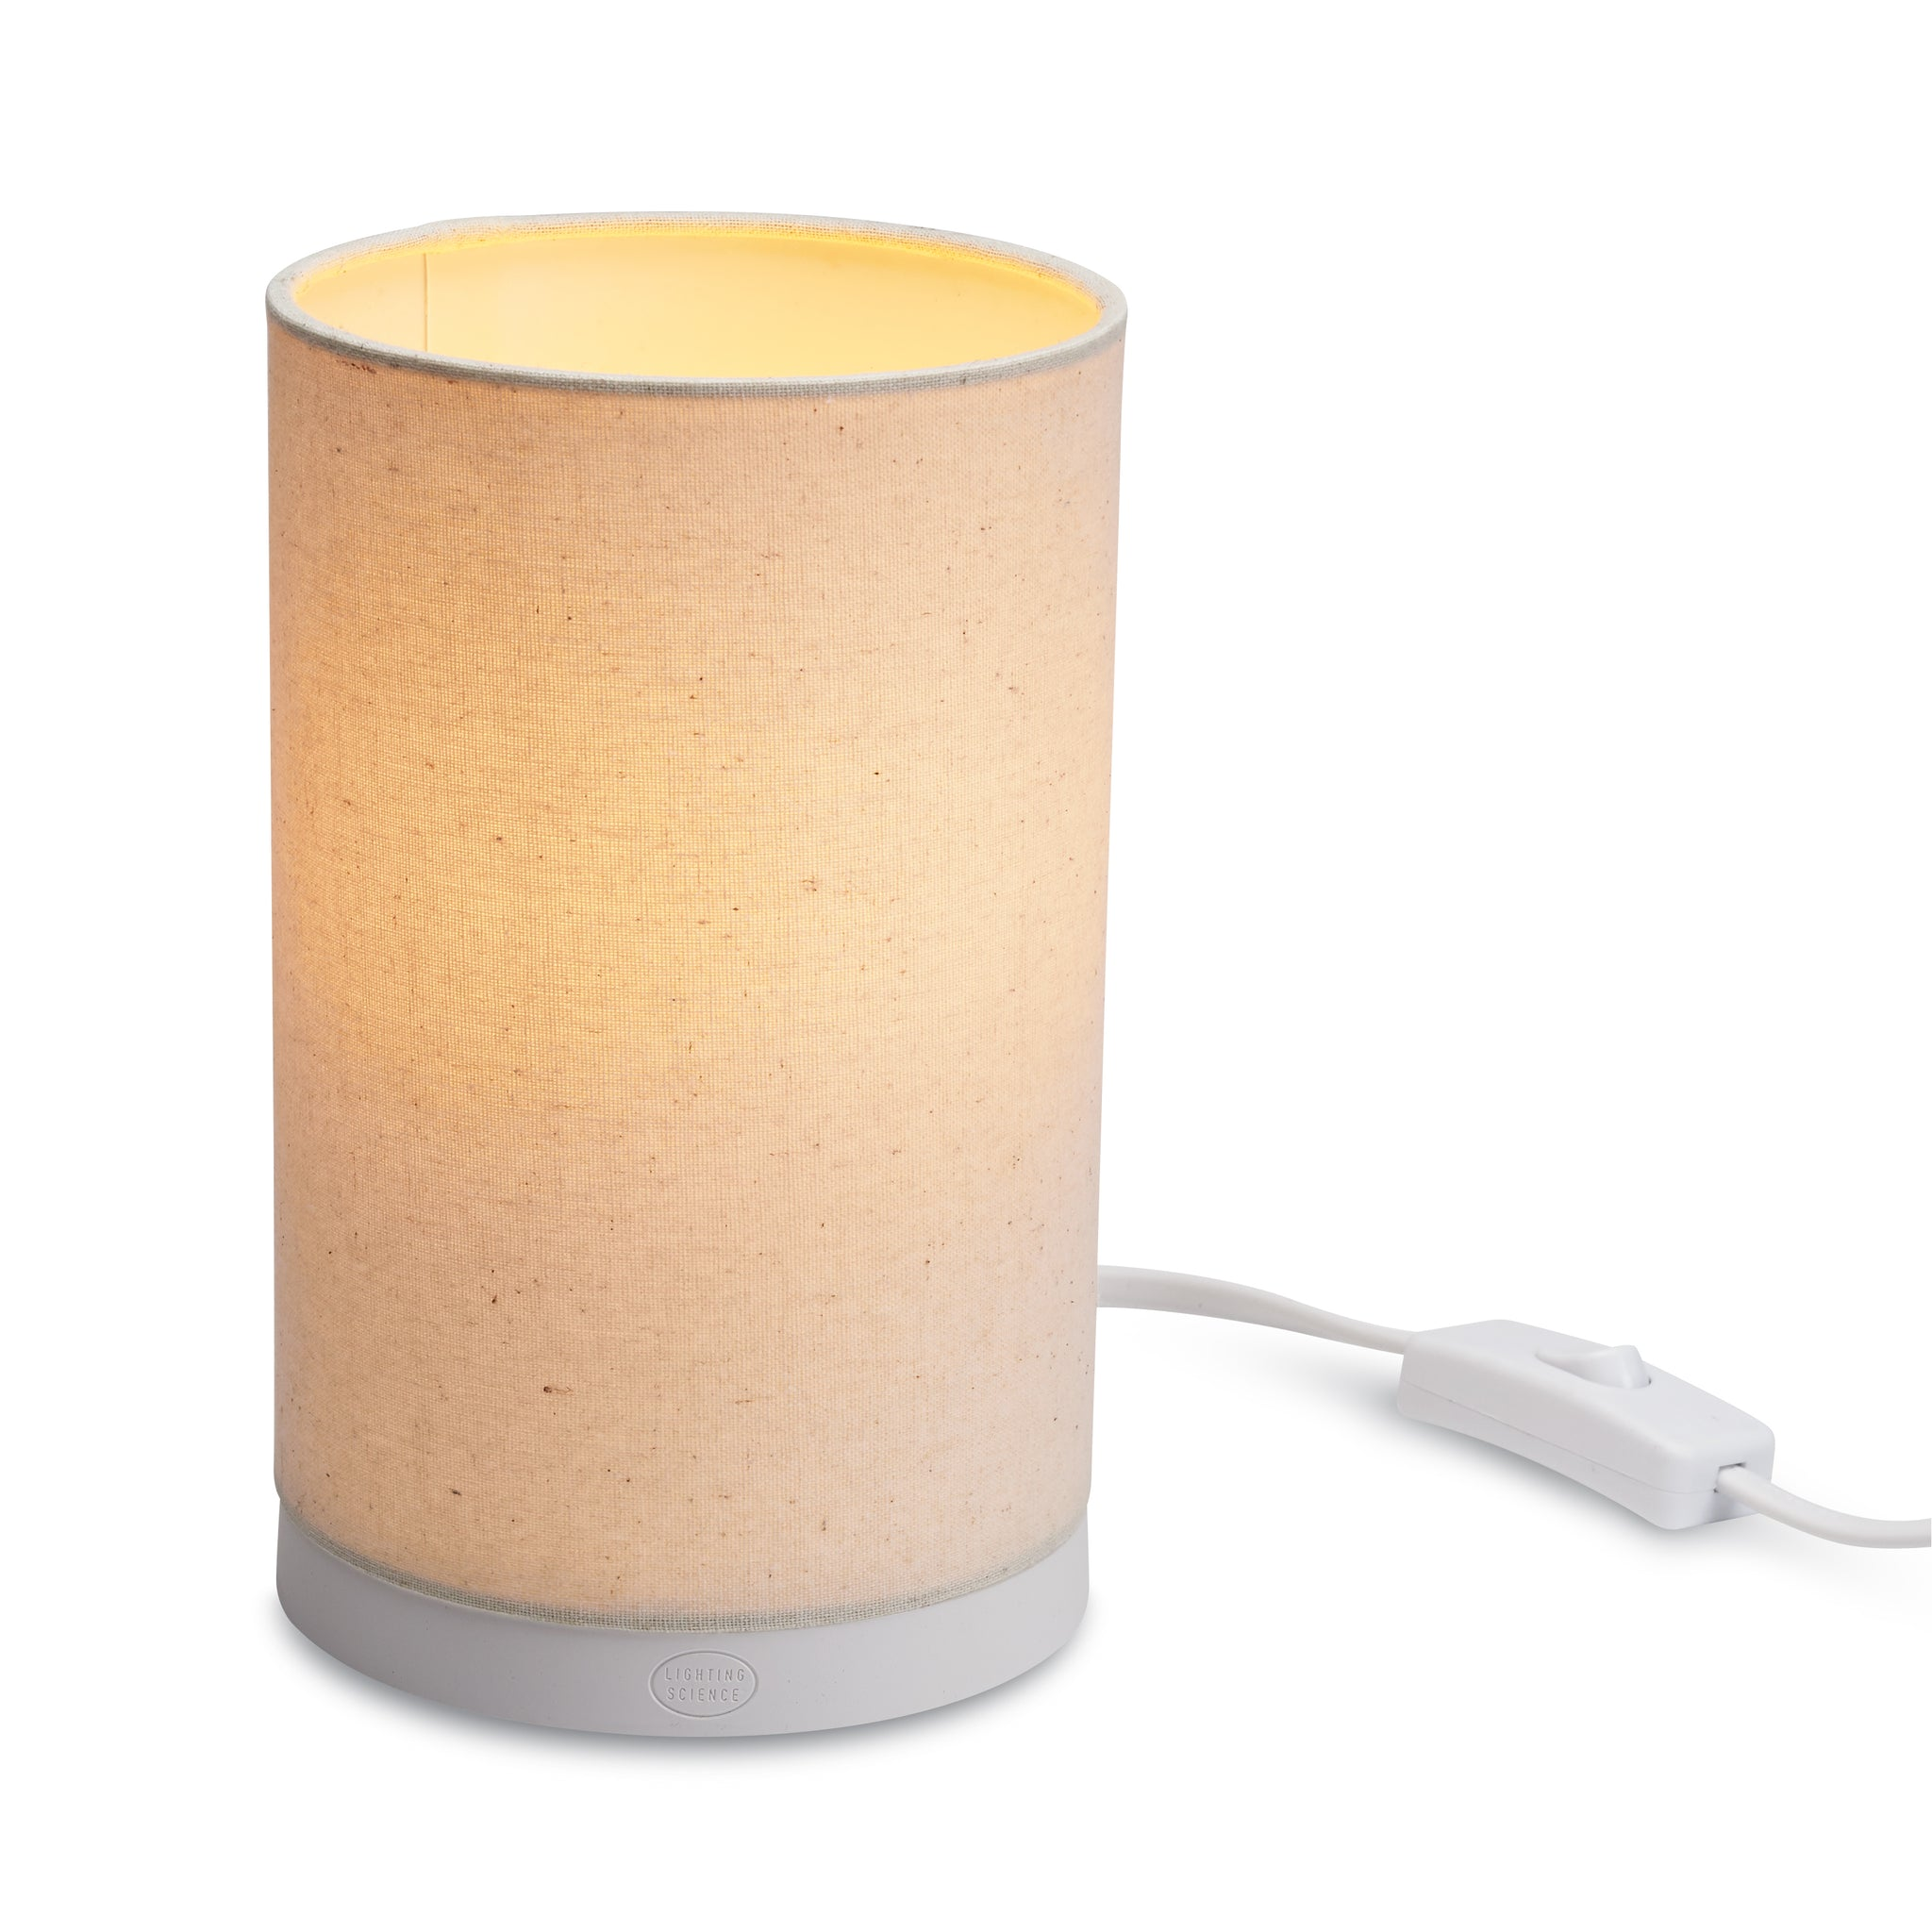 GOODNIGHT® | BEDSIDE TABLE LAMP INCLUDES GOODNIGHT® SLEEP ENHANCING A19 LED  BULB